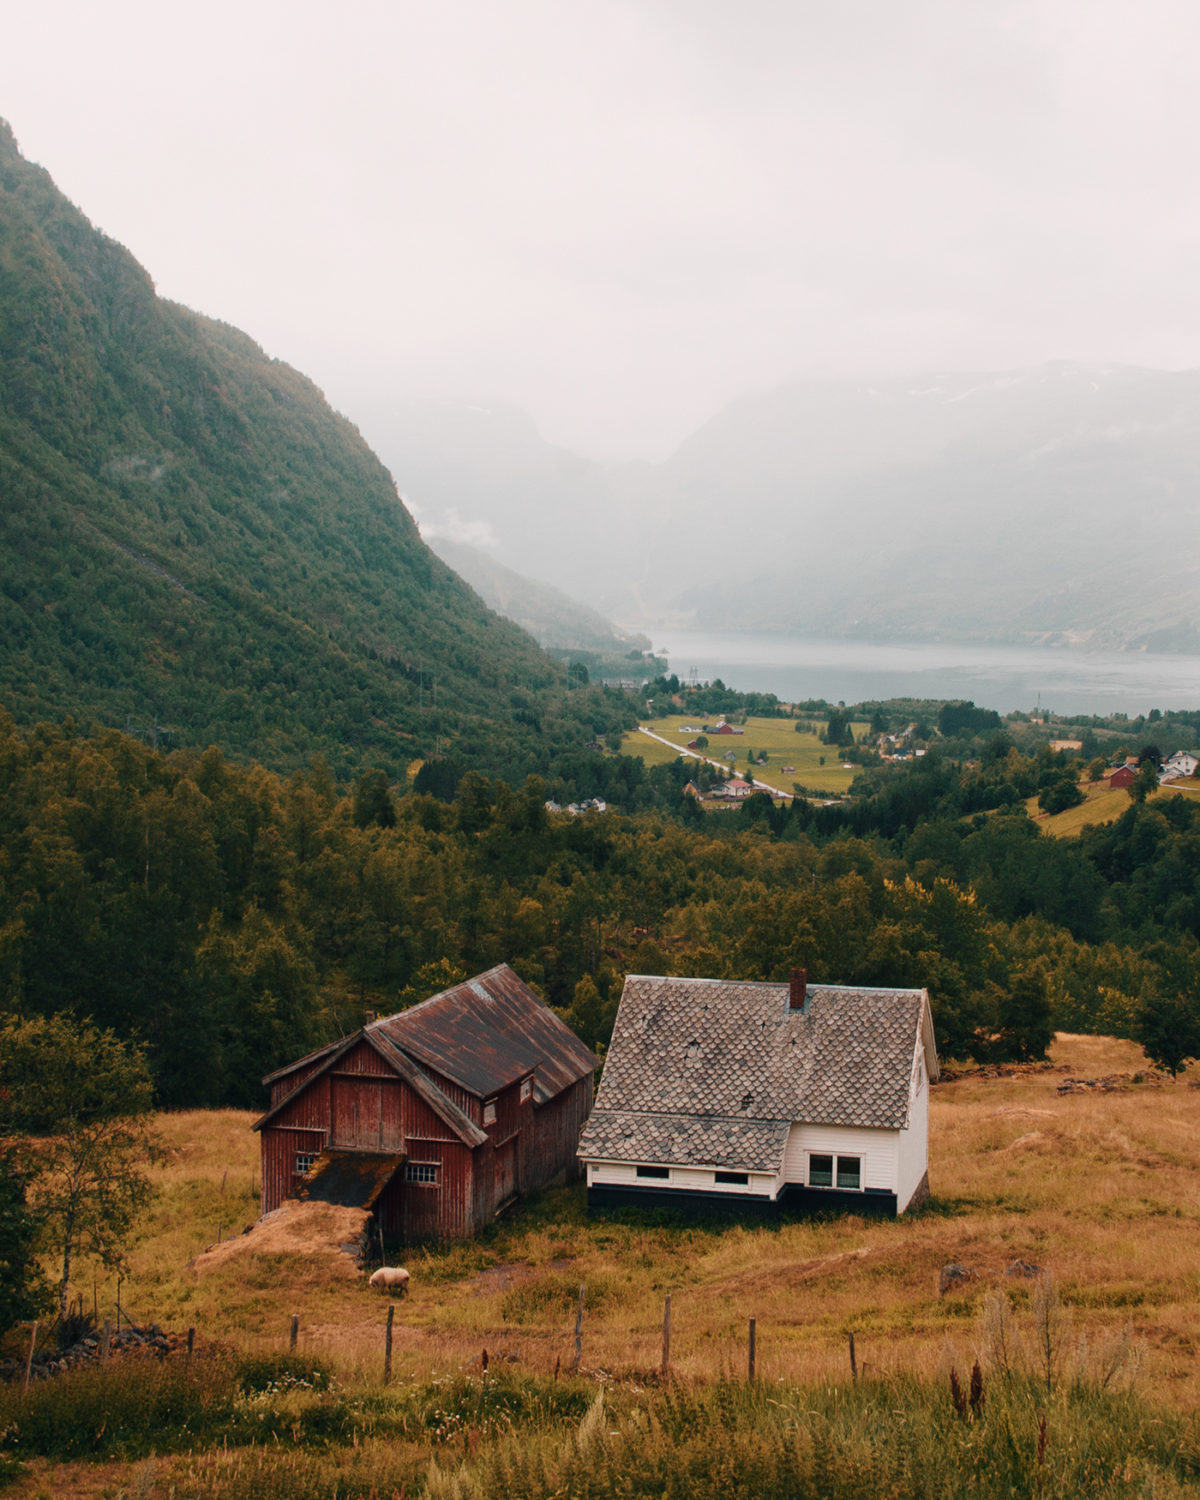 Houses in Røldal, Norway